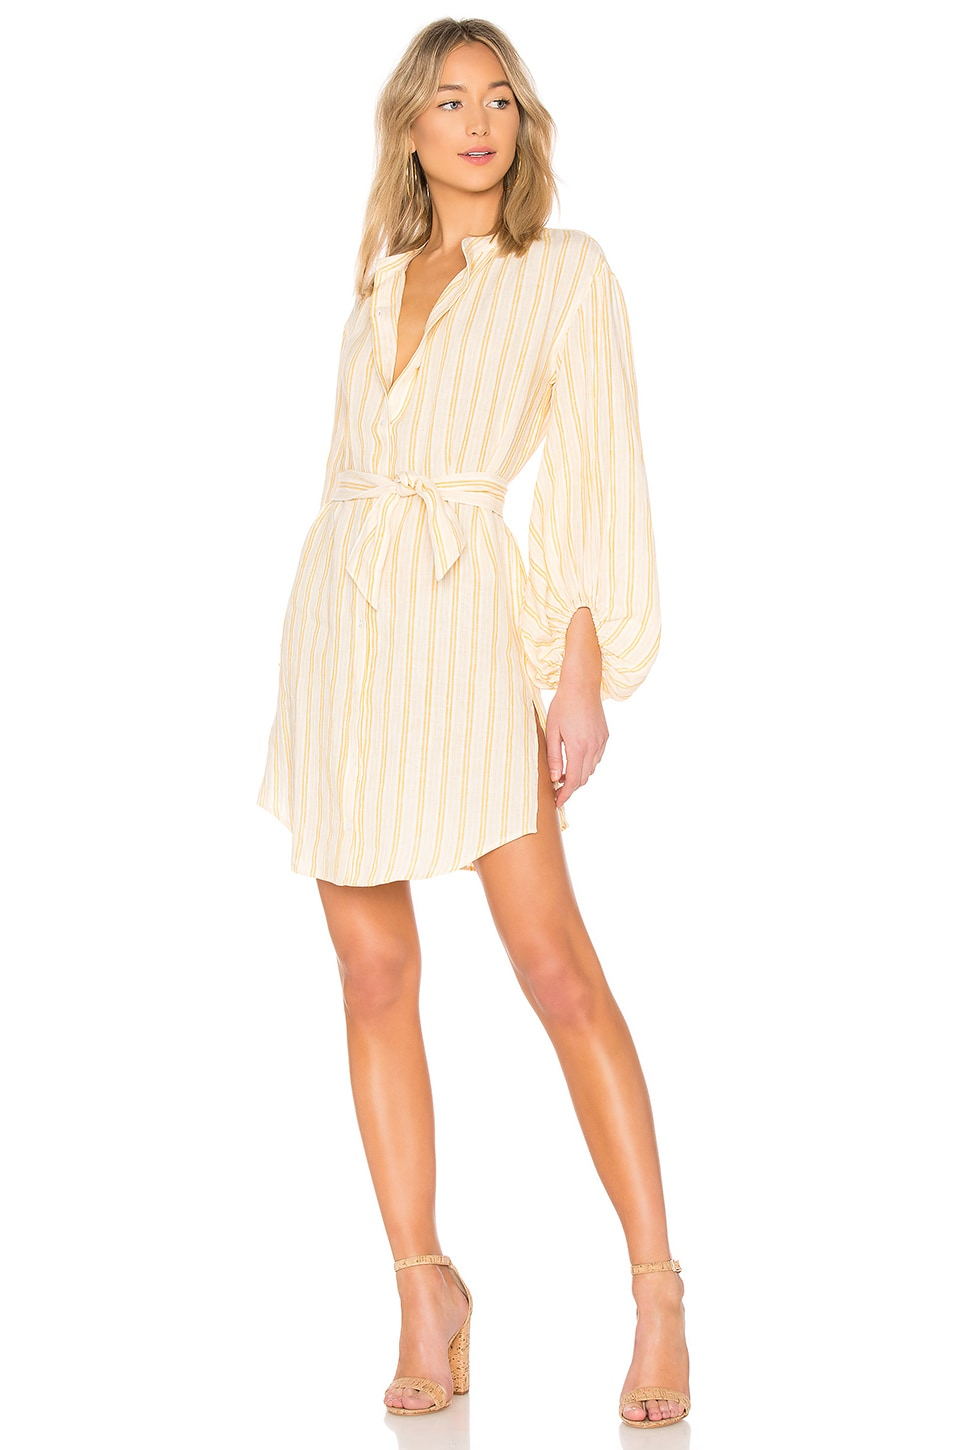 Beatrissa Shirt Dress in Yellow. - size S (also in L,M,XS,XXS) Joie